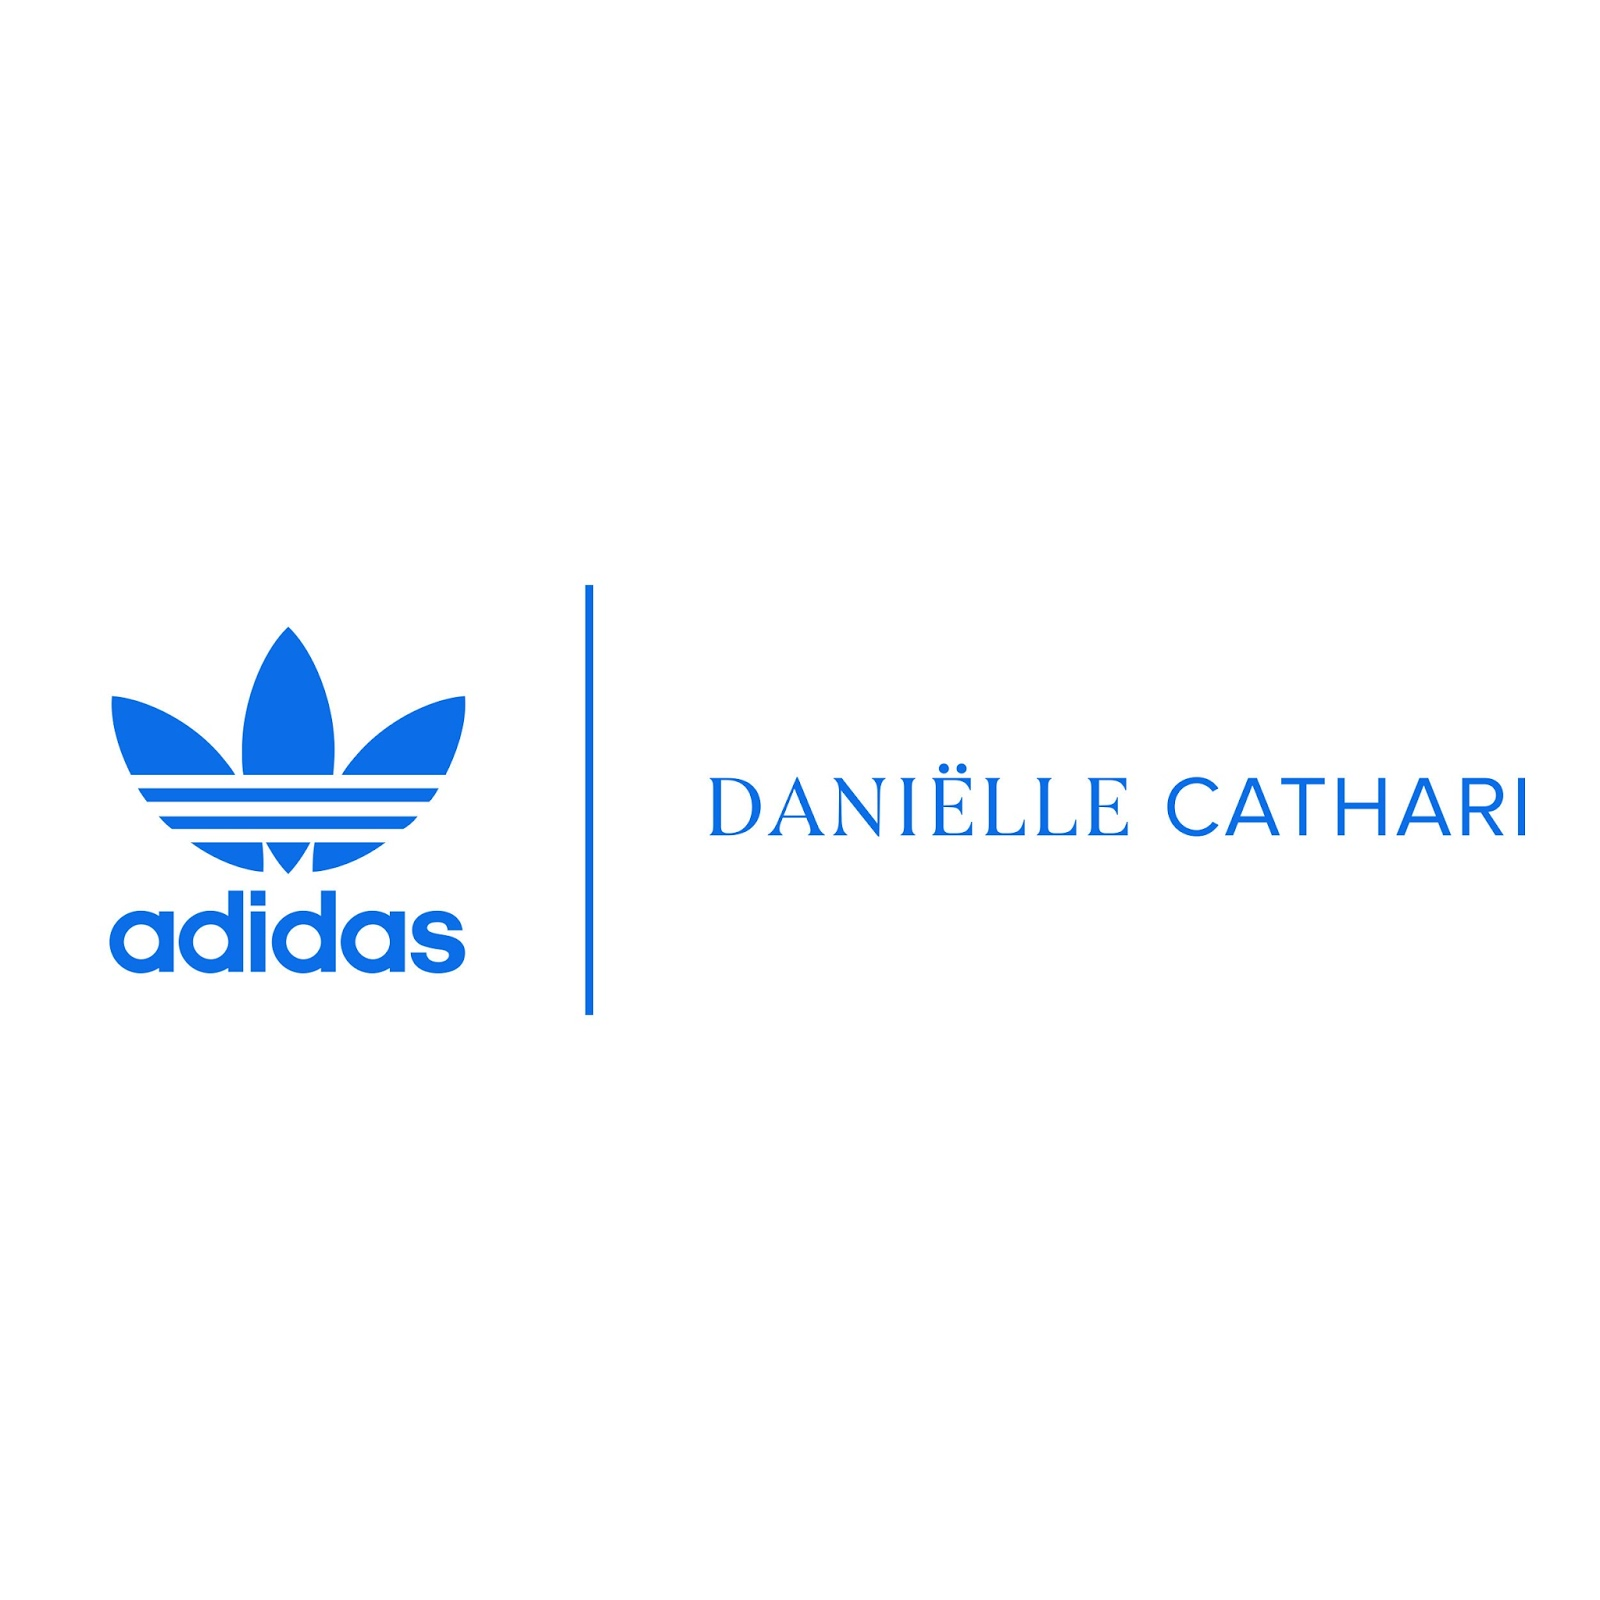 buy popular 800ed 00f96 adidas Originals Debuts Collaboration with Amsterdam-Based Designer  Danielle Cathari at New York Fashion Week